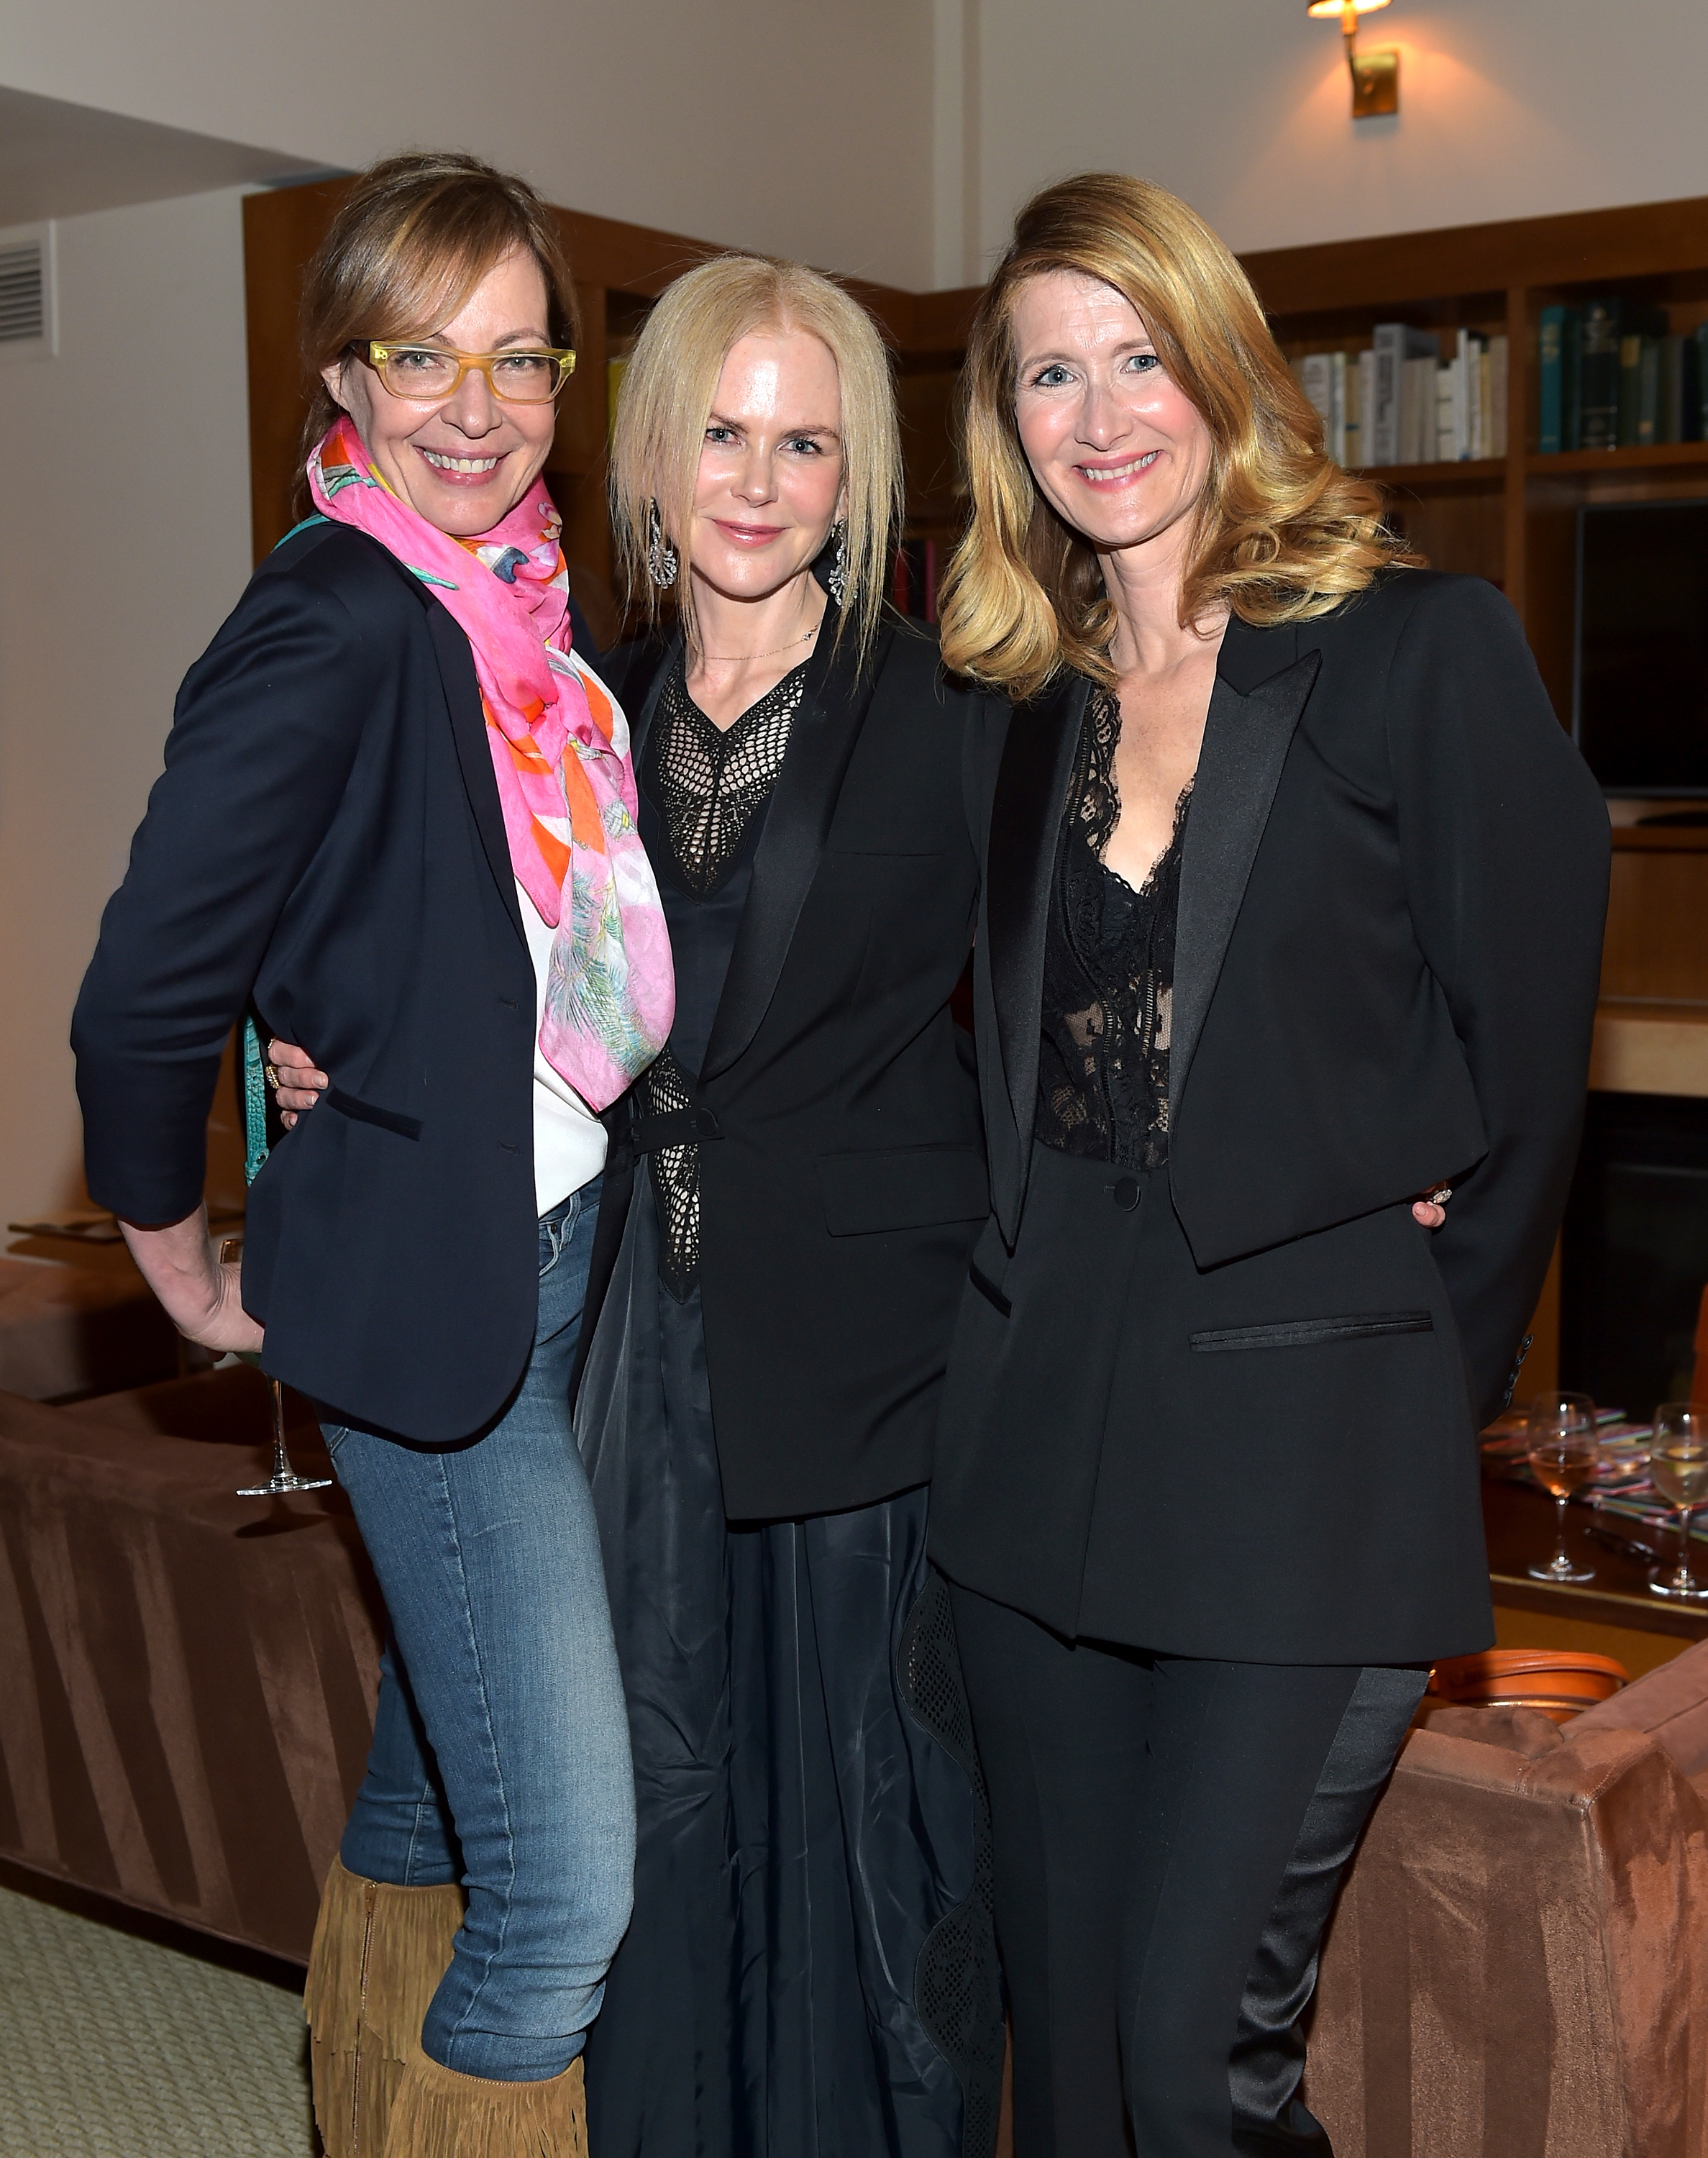 Allison Janney, Nicole Kidman, and host Laura Dern attend InStyle and Brahmin's Badass Women Dinner in West Hollywood, California, on April 14, 2018.